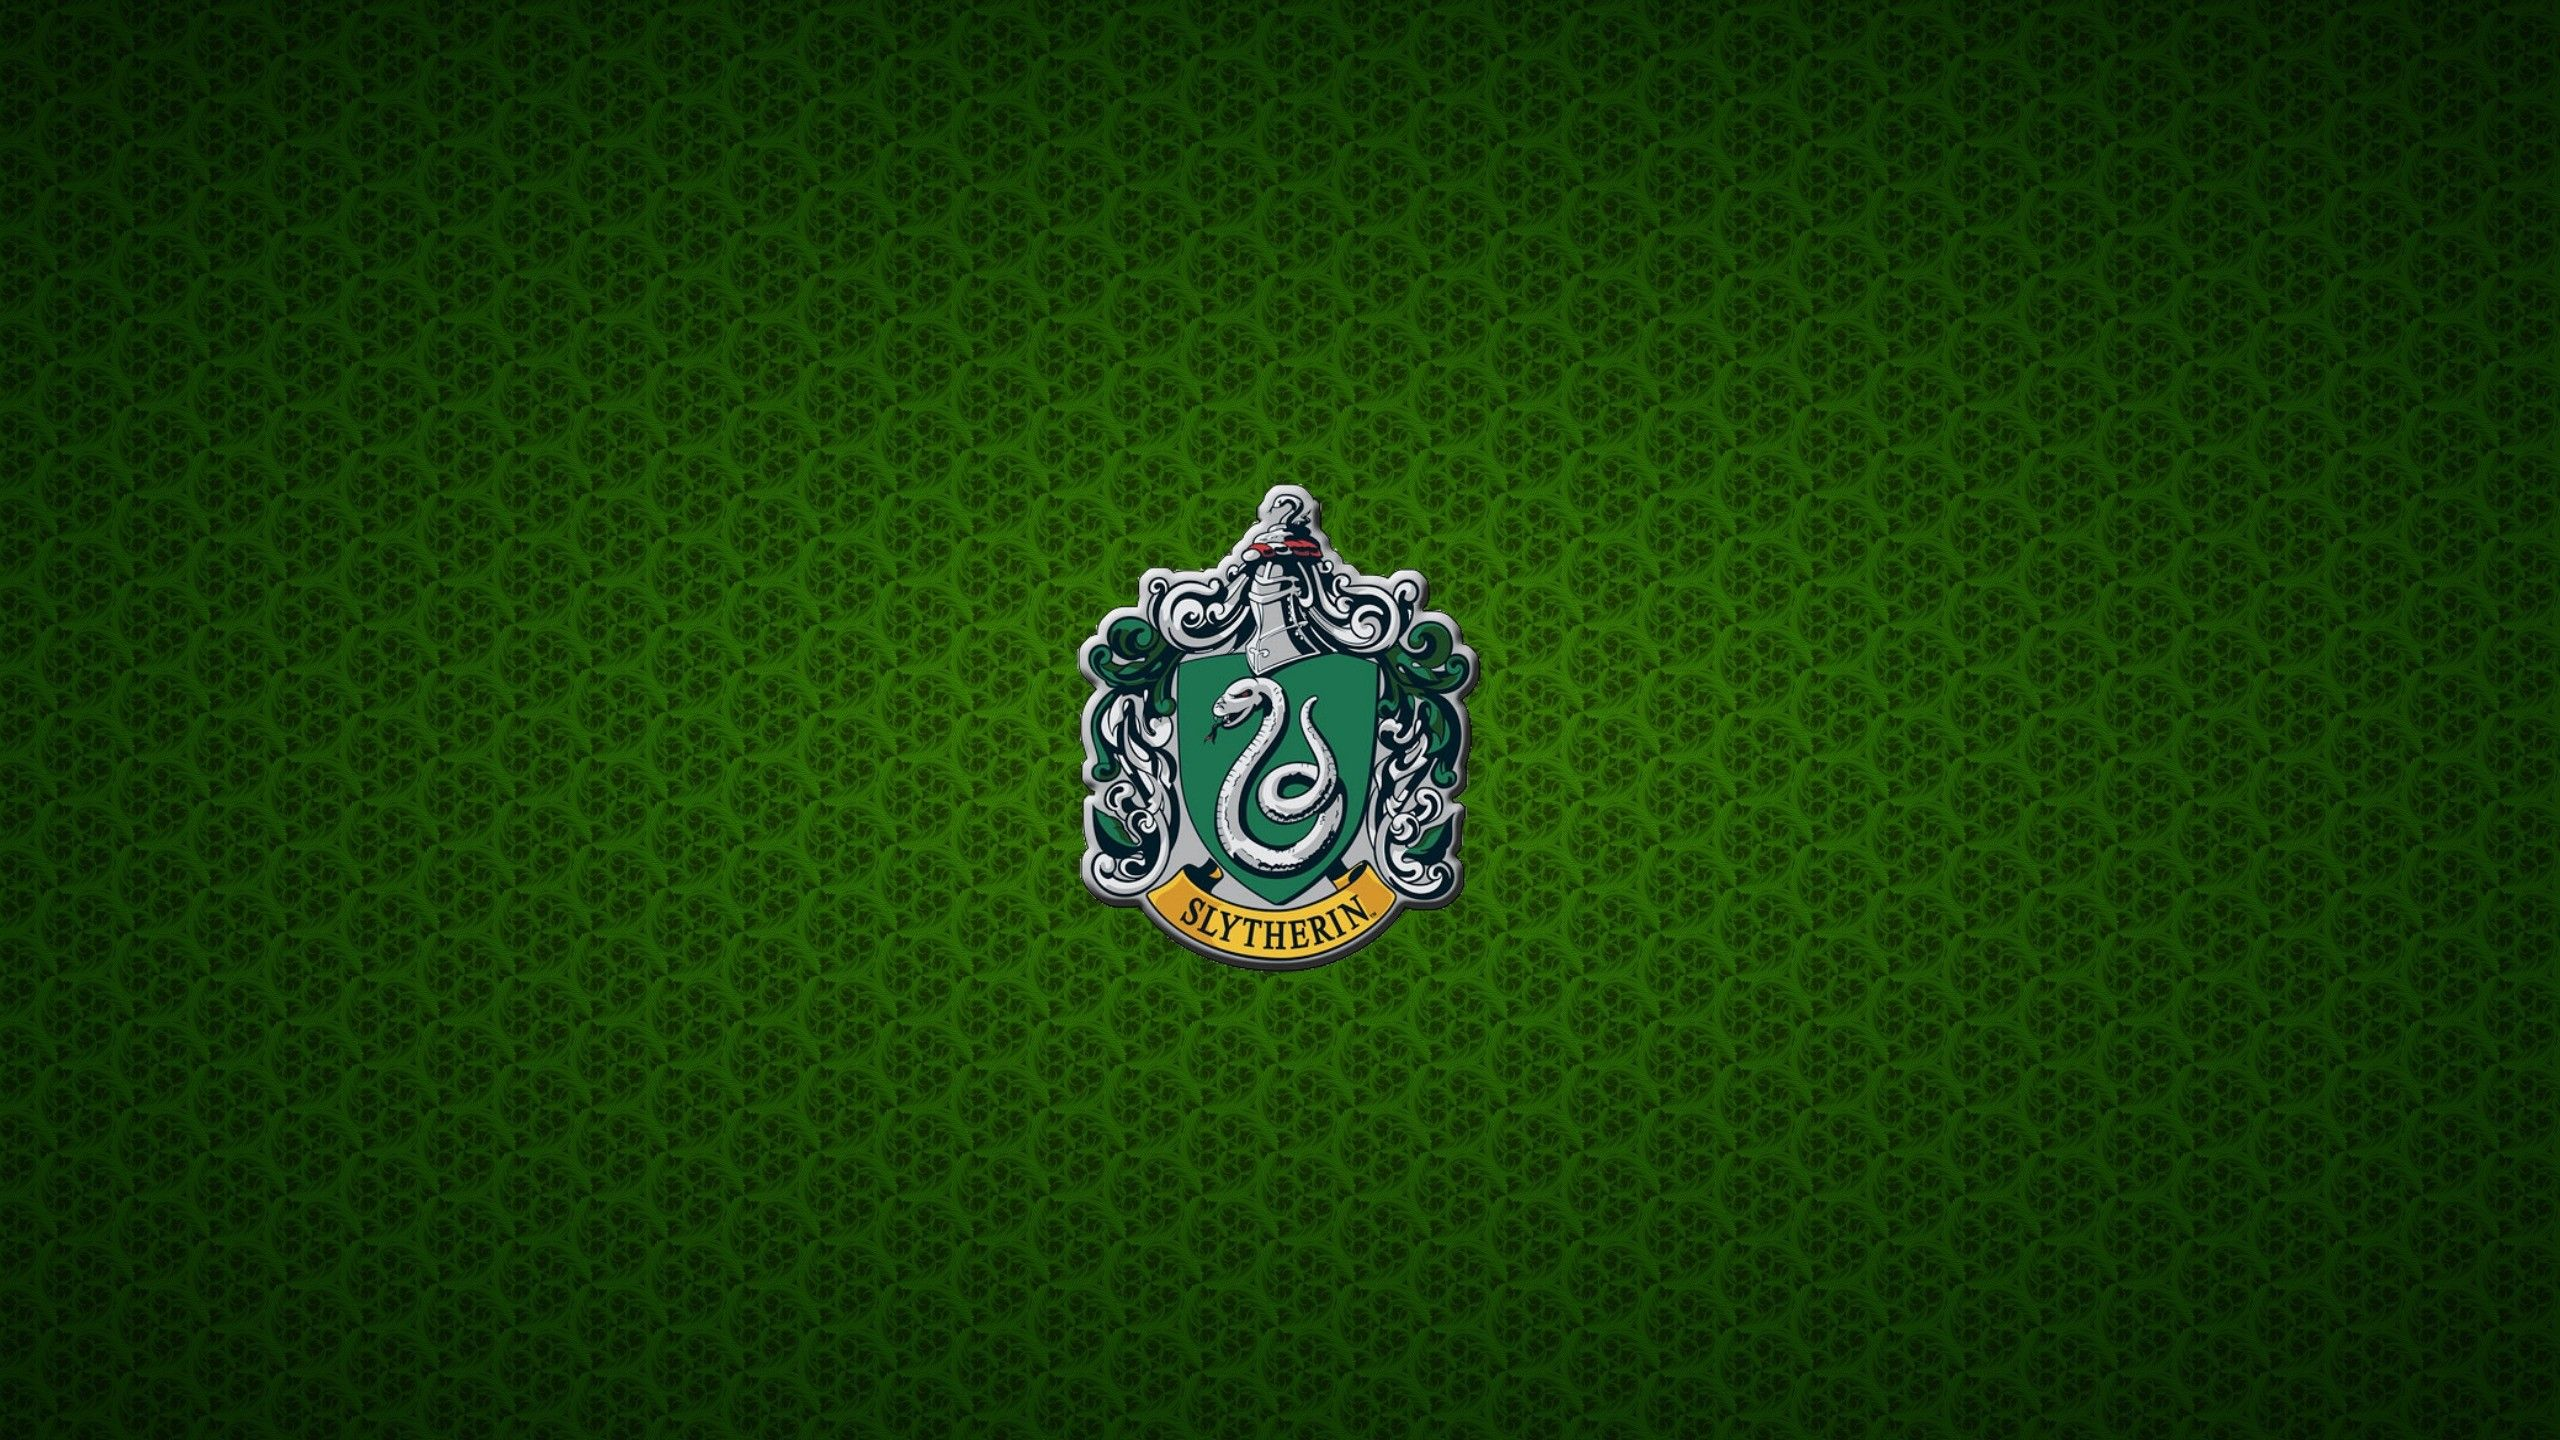 2560x1440 Wallpaper Save It Harry Potter Iphone Wallpaper Slytherin Wallpaper Slytherin Harry Potter